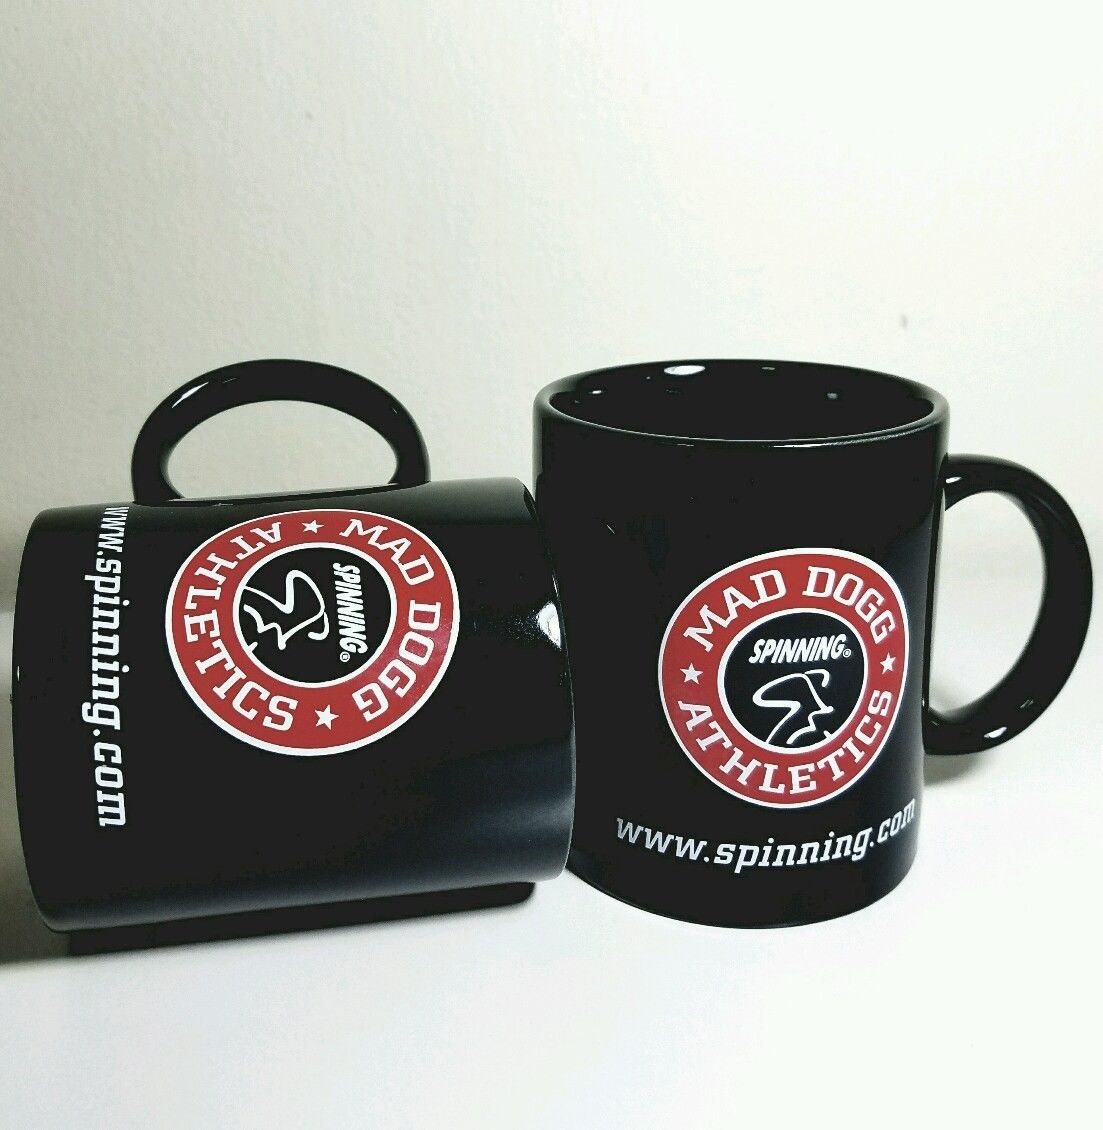 2 MAD DOGG Athletics Coffee Mugs